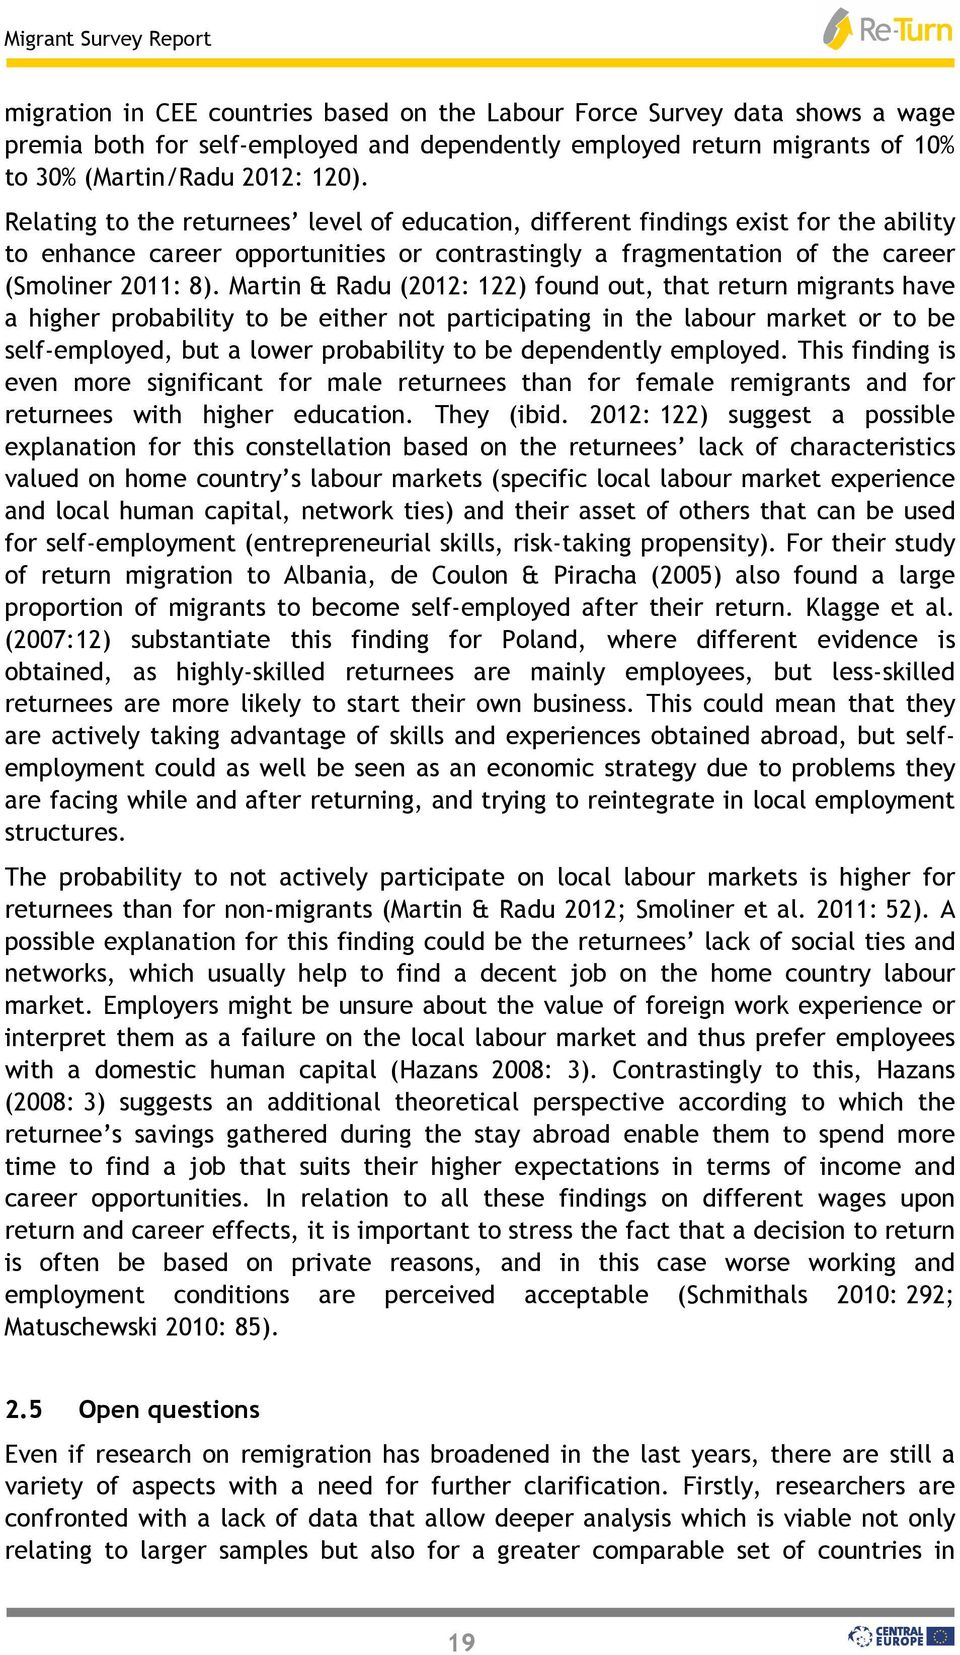 Martin & Radu (2012: 122) found out, that return migrants have a higher probability to be either not participating in the labour market or to be self-employed, but a lower probability to be